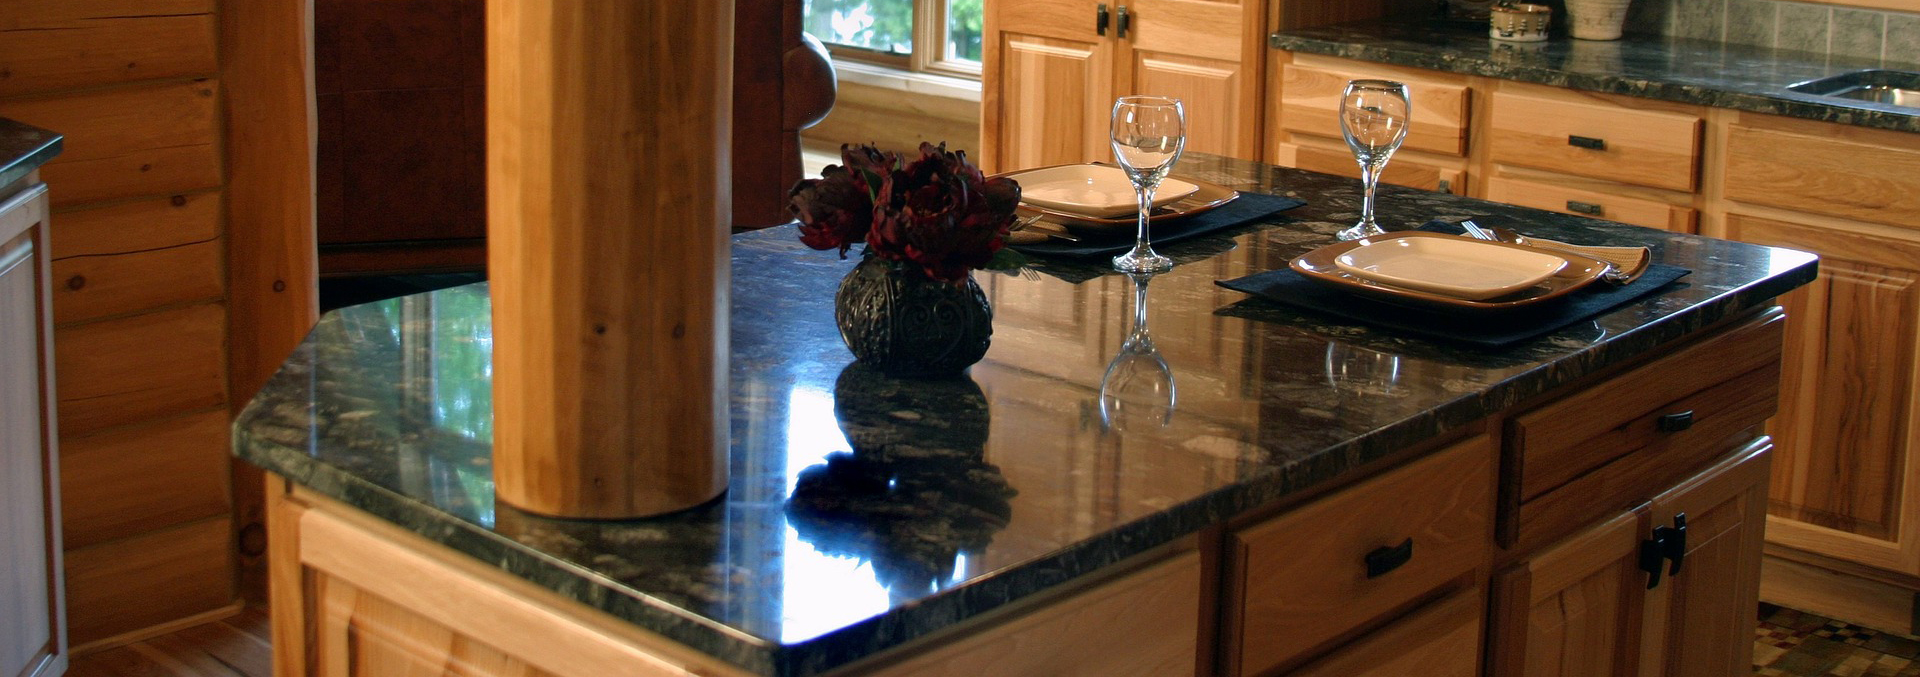 the v stones granite kitchen saura countertop dutt choose great color prices right